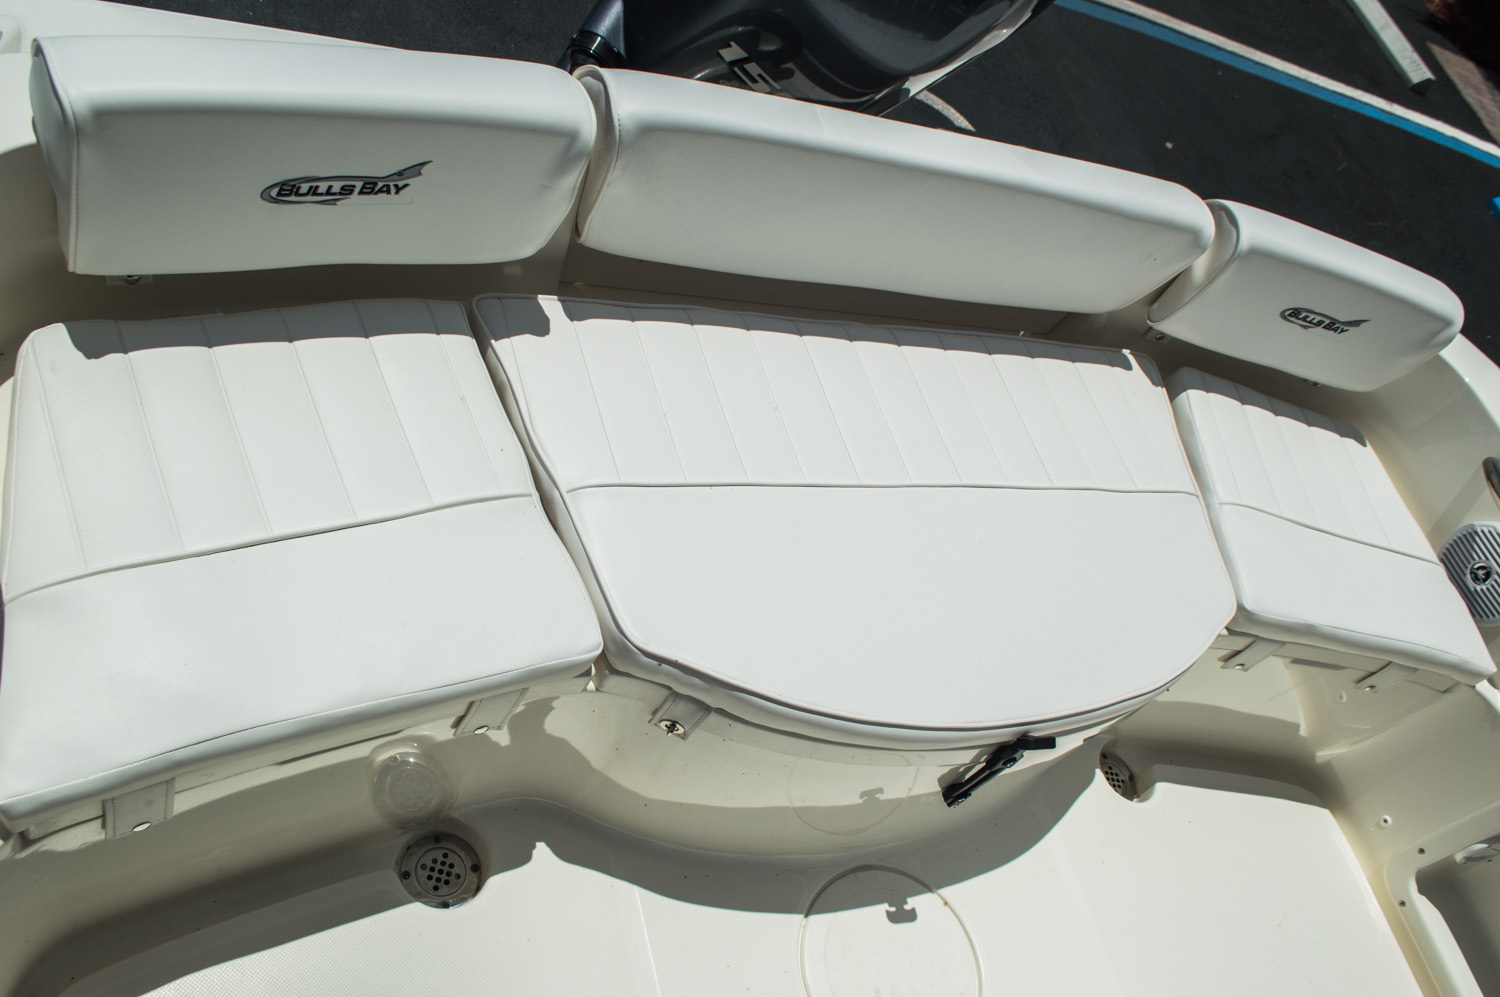 Thumbnail 22 for New 2016 Bulls Bay 200 CC Center Console boat for sale in West Palm Beach, FL